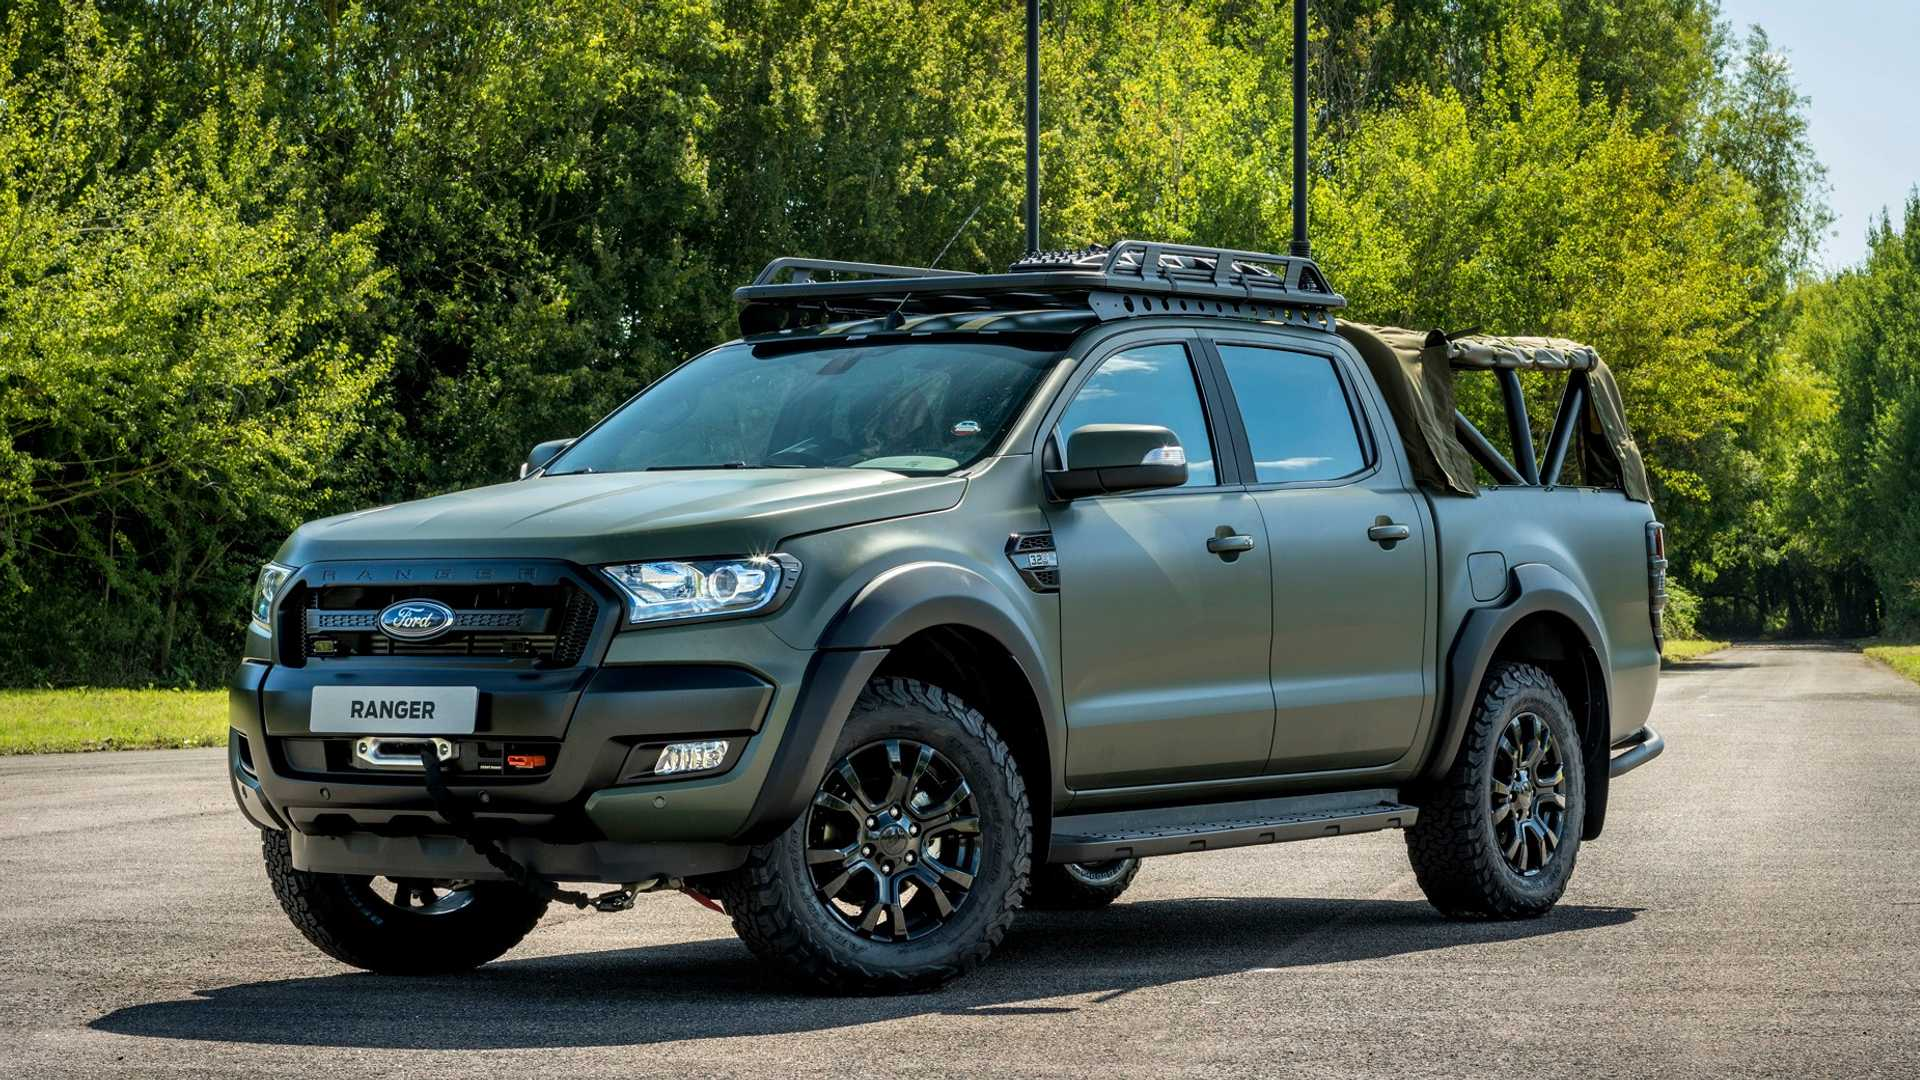 Militarised Ford Ranger by Ricardo looks ready for action